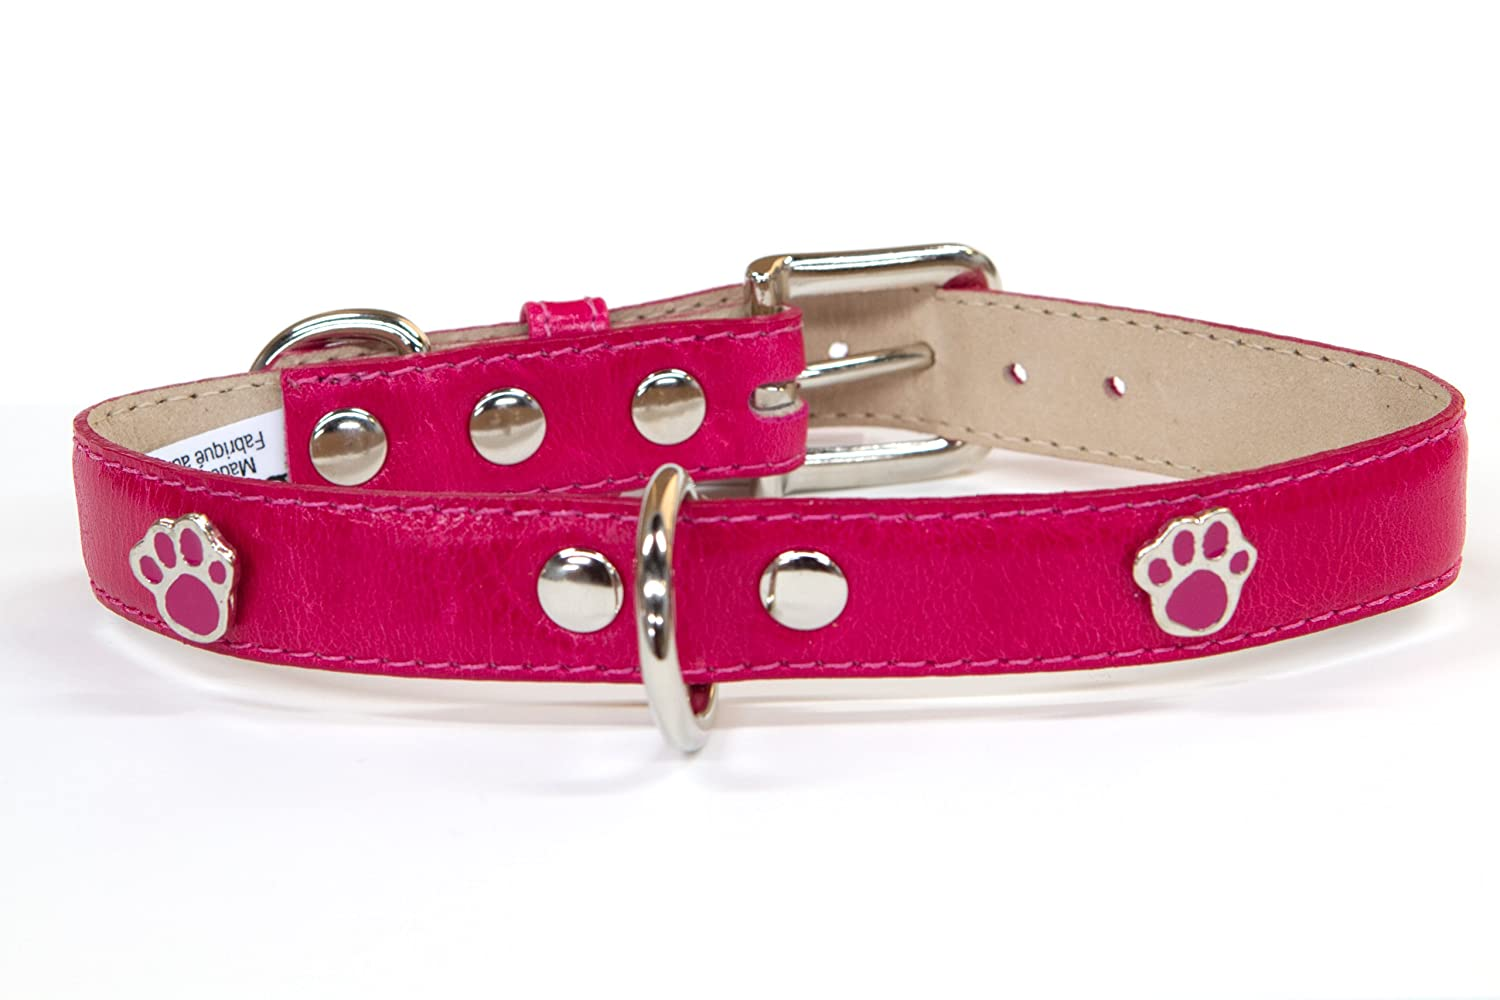 blueemax Genuine Leather Vintage Cow Dog Collar with Paw Stud, 5 8-Inch by 8-Inch, Fushia